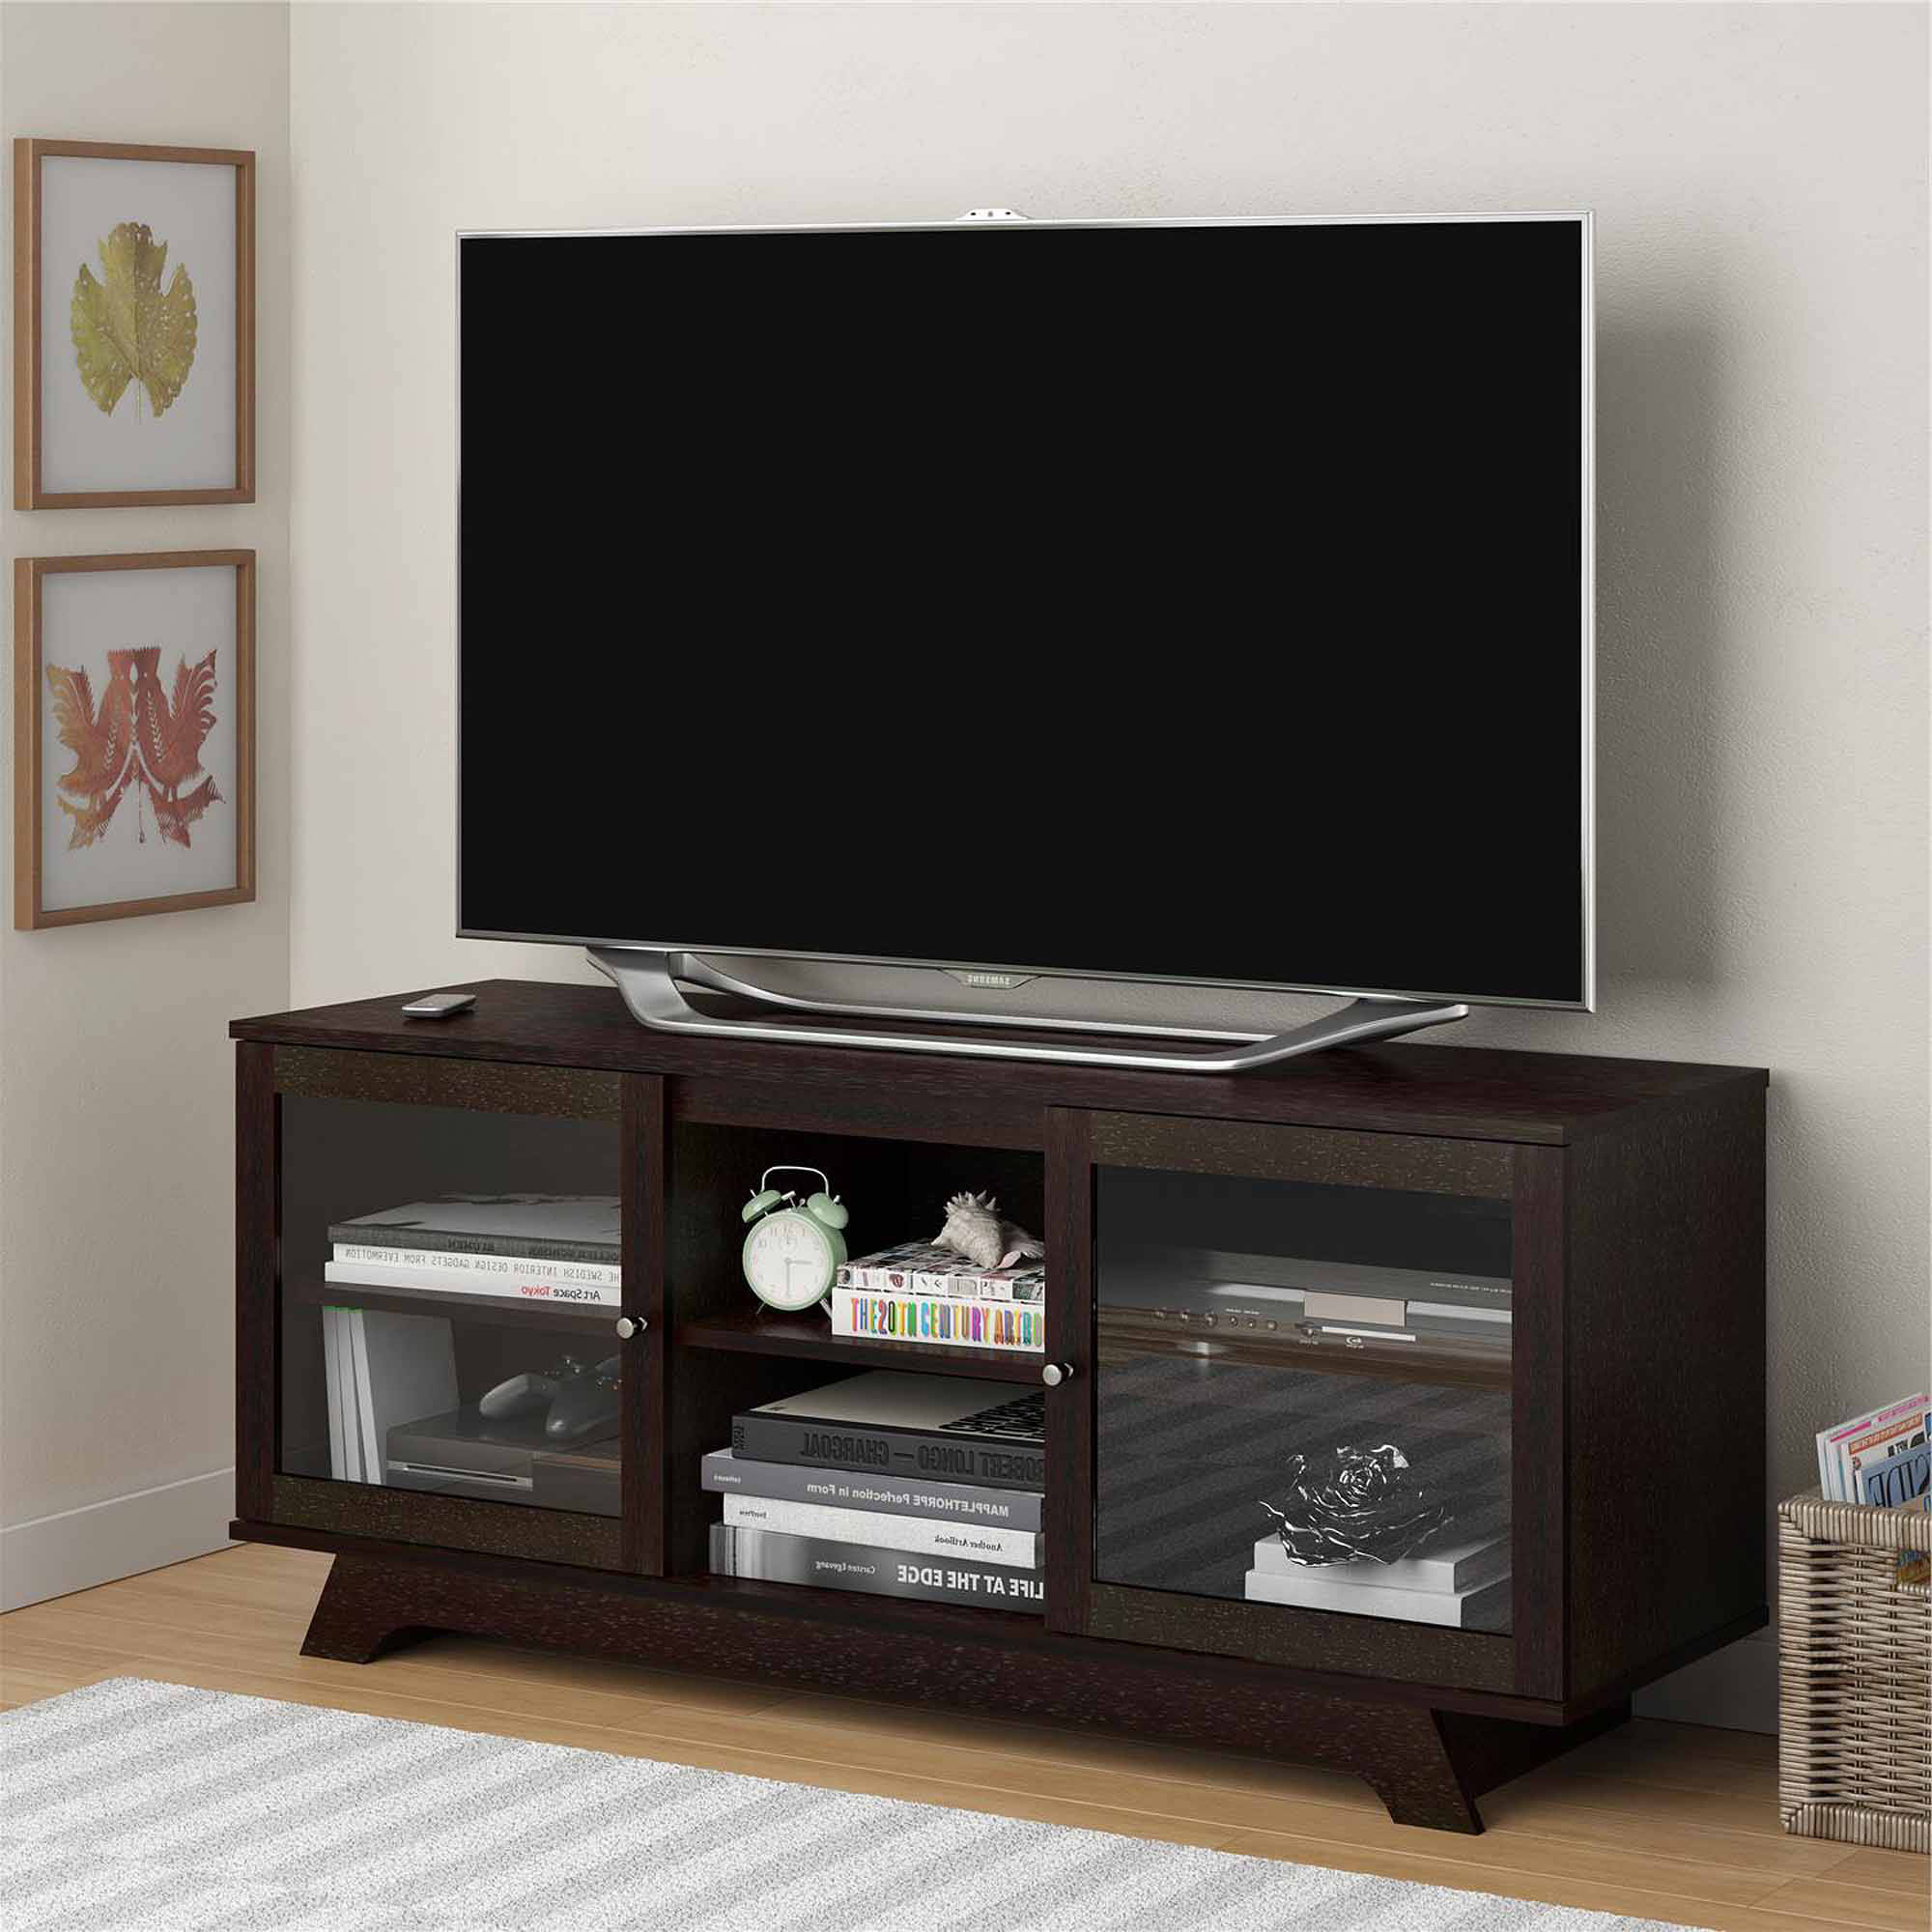 "Newest Tv With Stands Throughout Sauder Harvest Mill Panel Tv Stand For Tvs Up To 42"", Abbey Oak (Gallery 11 of 20)"